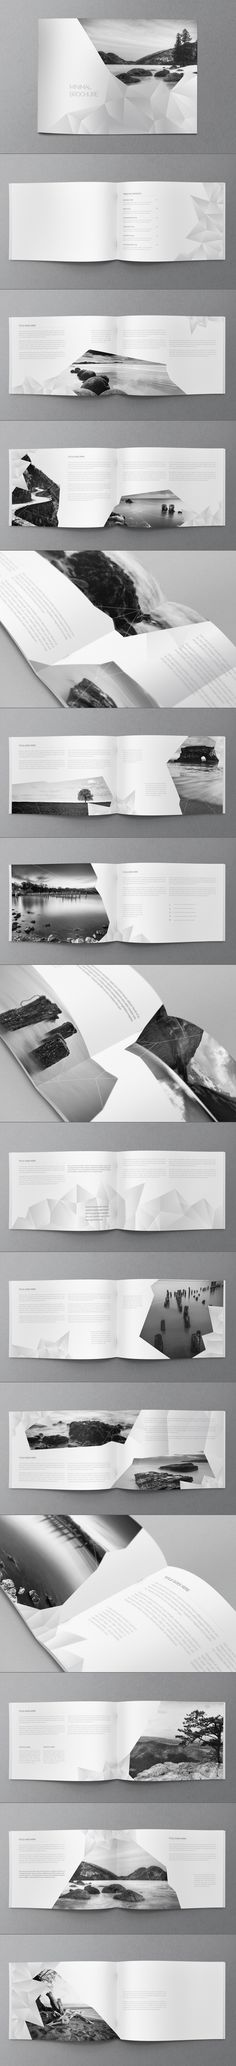 White Minimal Brochure by Abra Design, via Behance